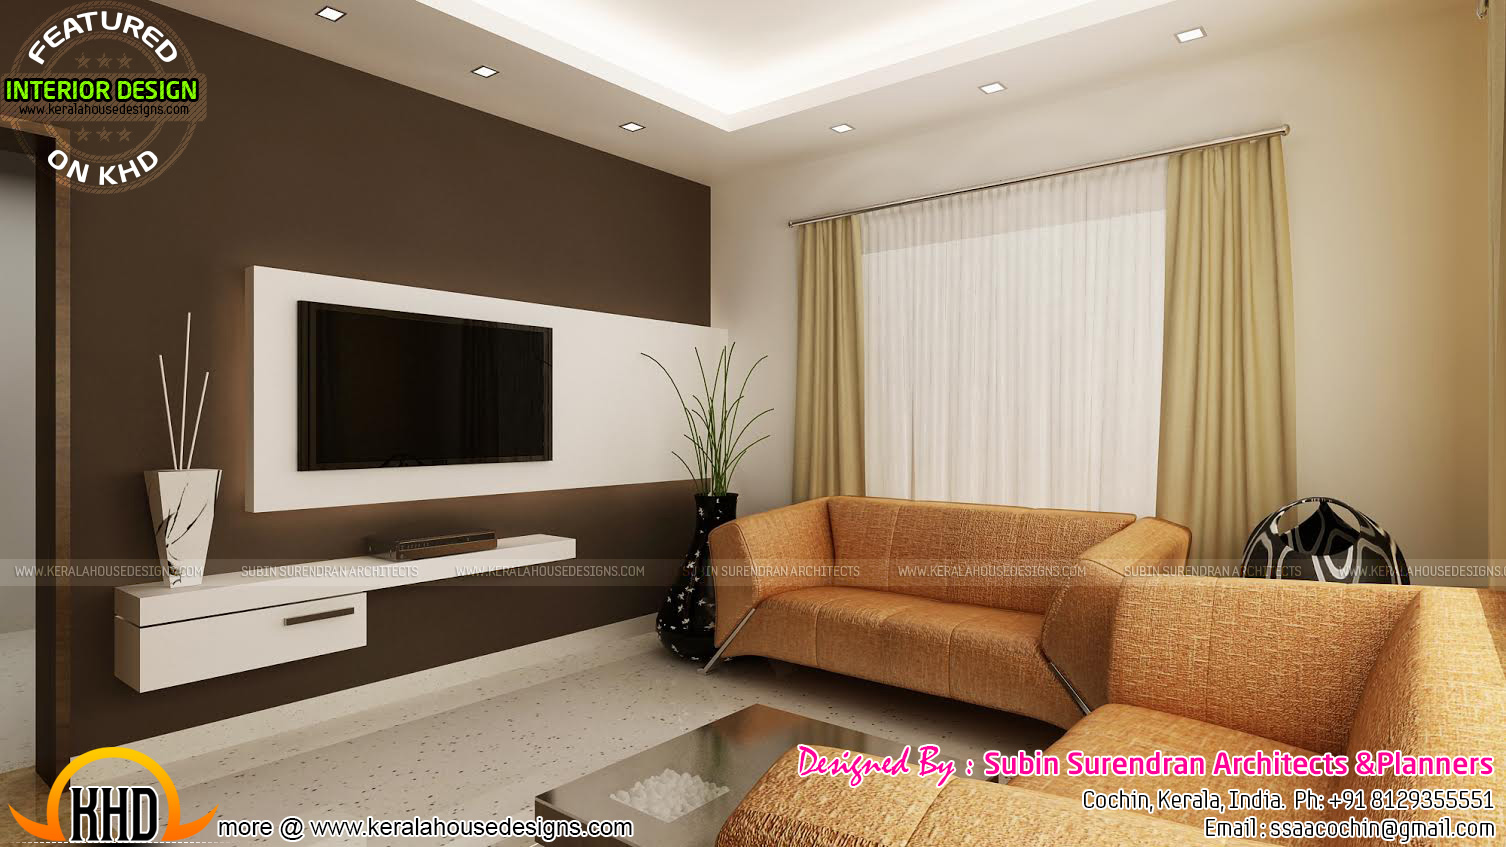 Modern living room kerala style 24 inspiring design for Simple indian bedroom interior design ideas